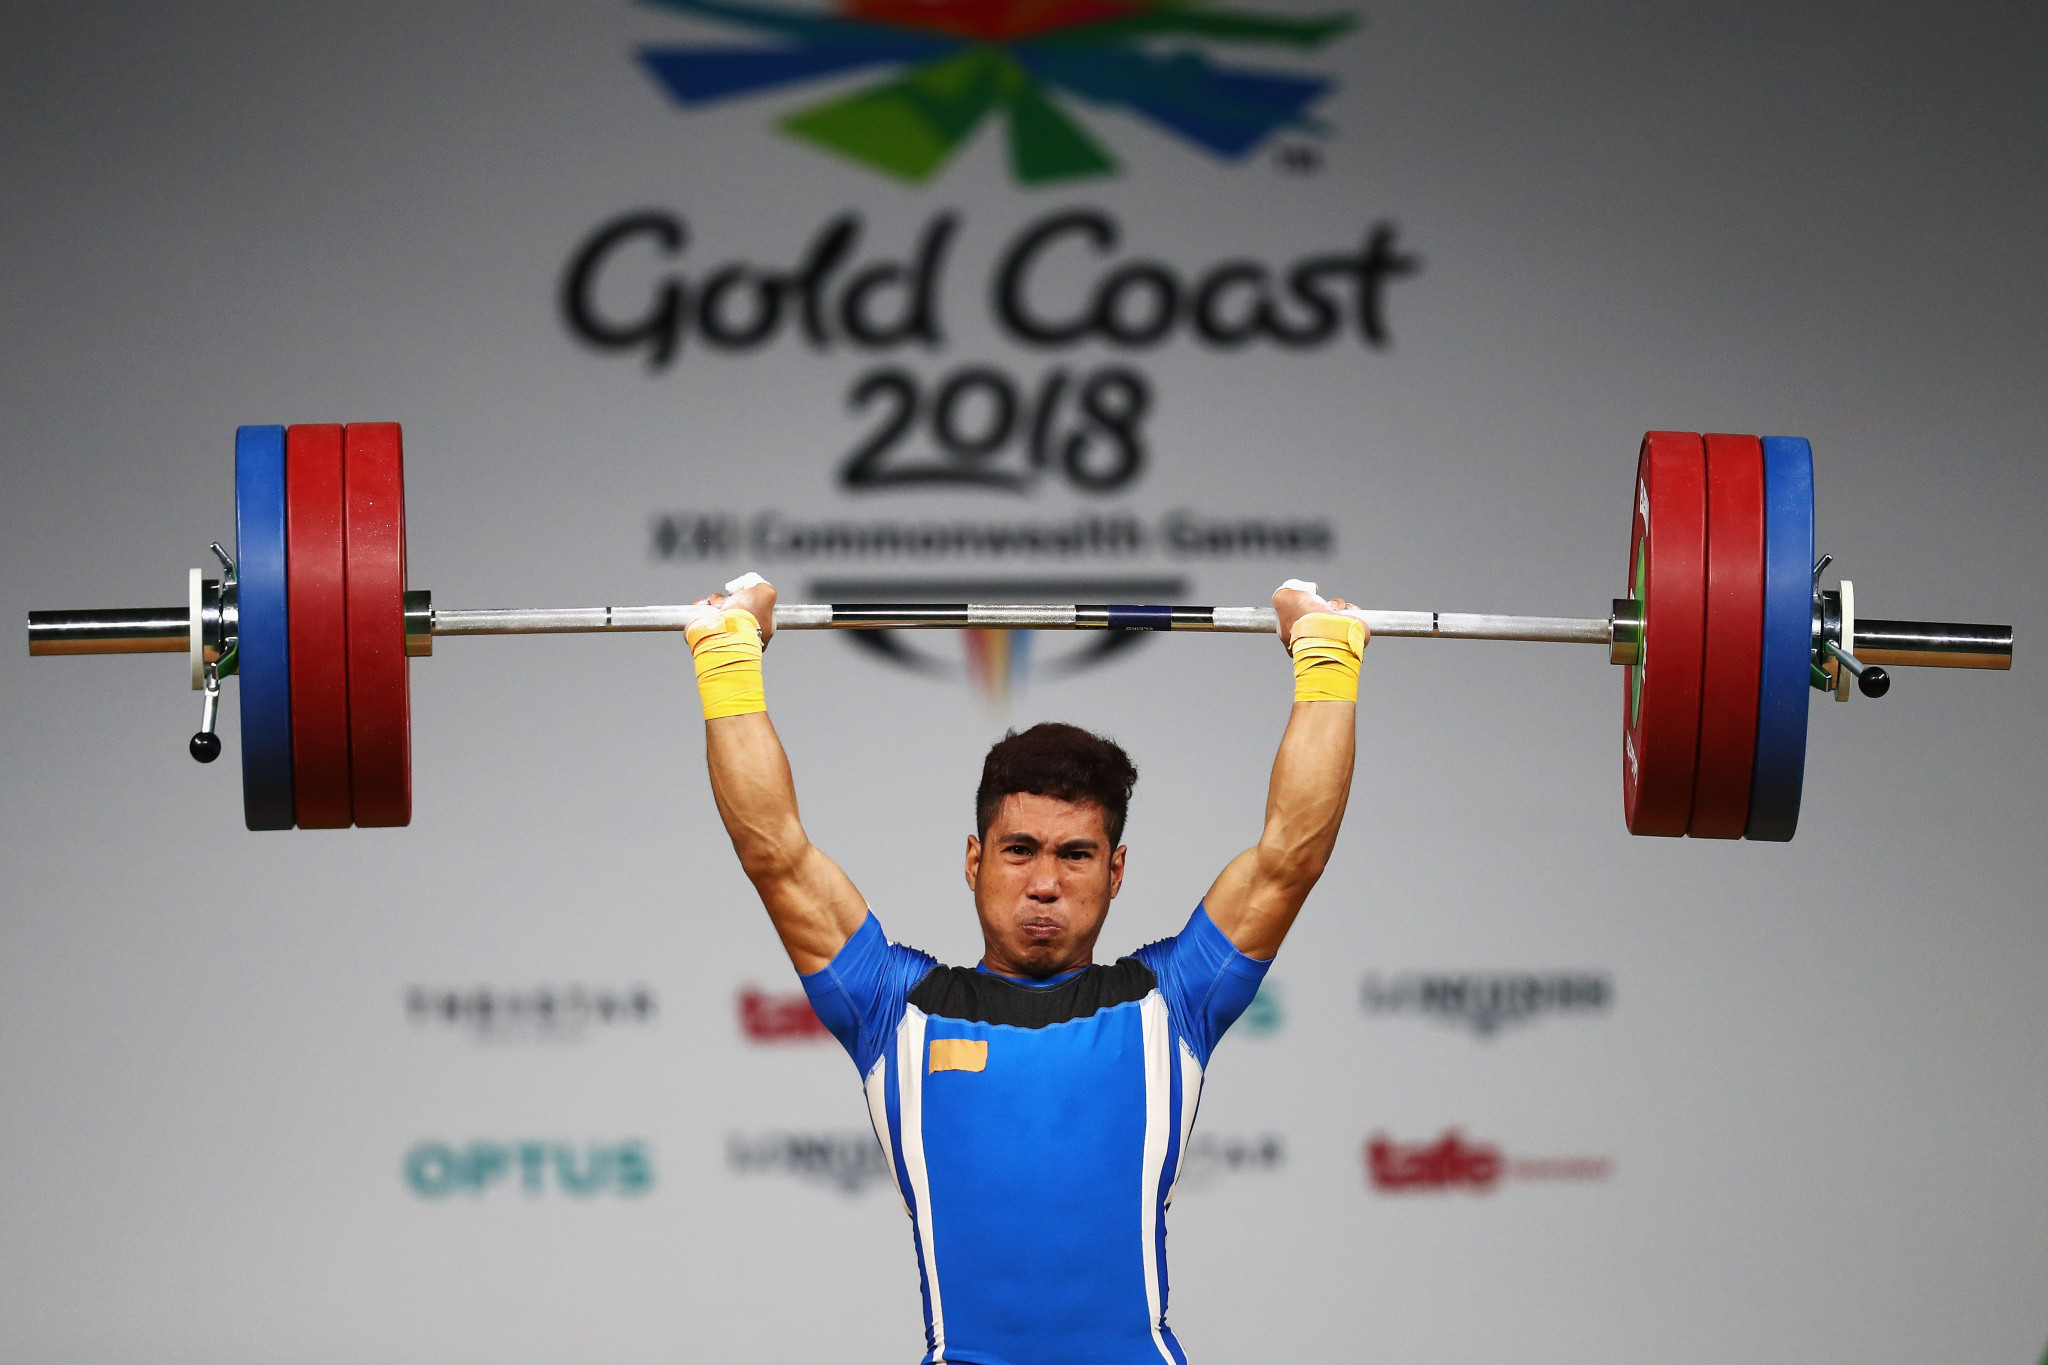 Muhamad Aznil Bidin won Malaysian gold at Gold Coast 2018 ©Getty Images